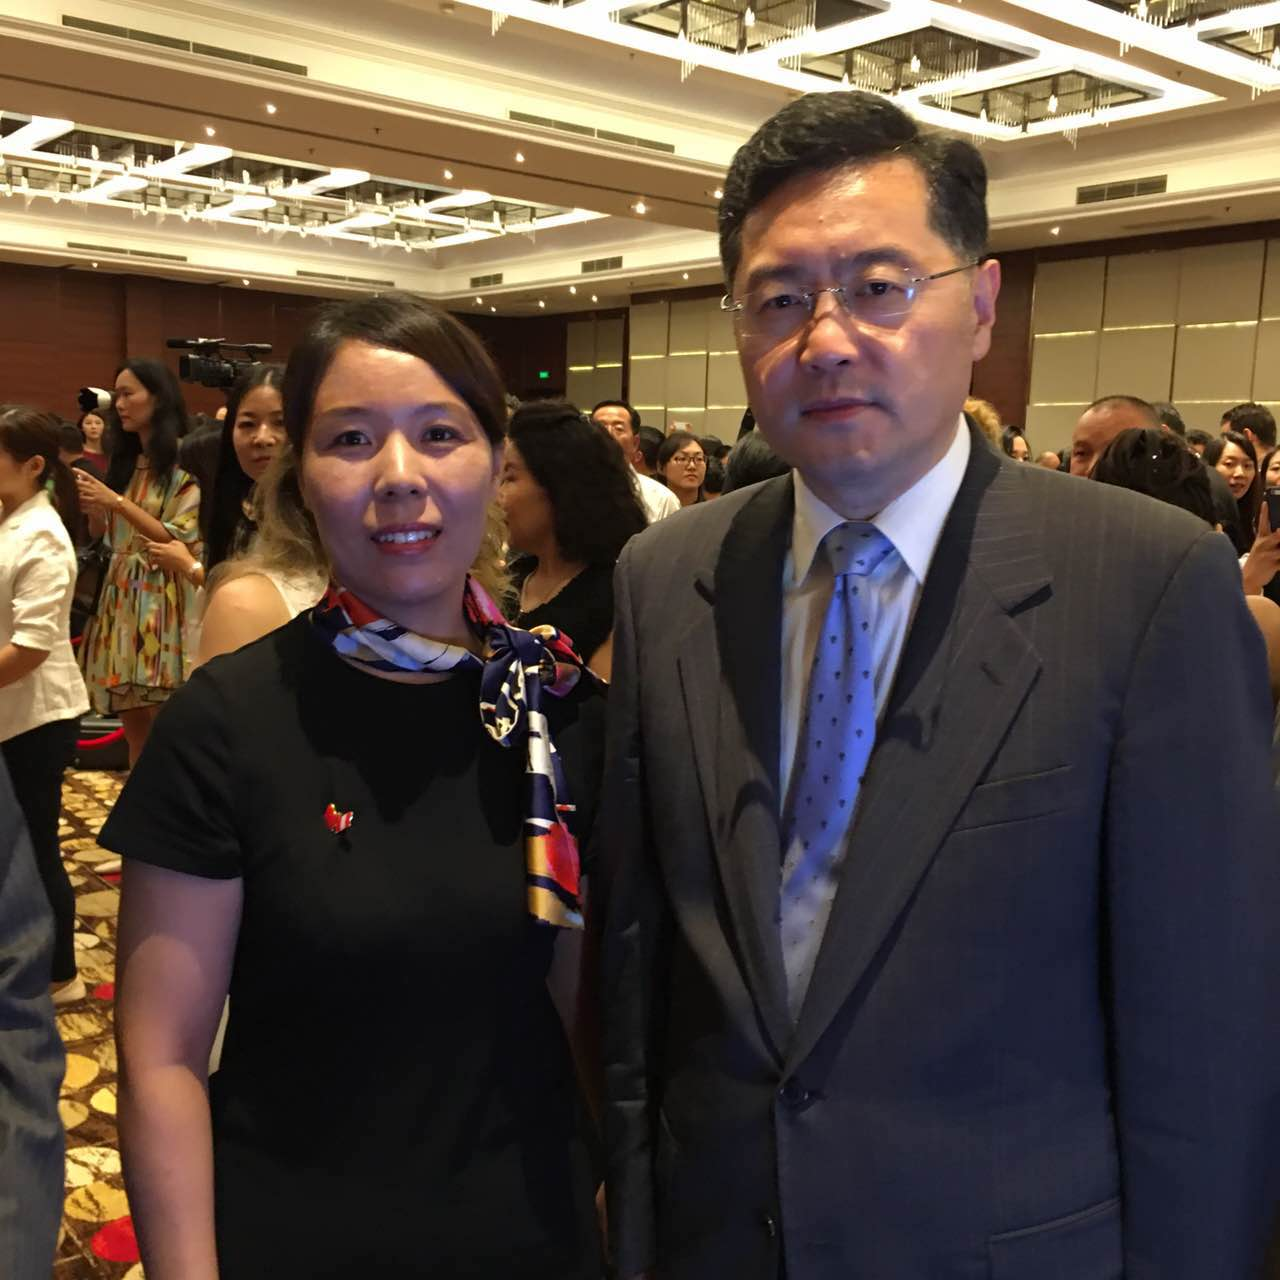 Assistant Minister of Foreign Affairs Qin Gang and Secretary General Cui Jianghong